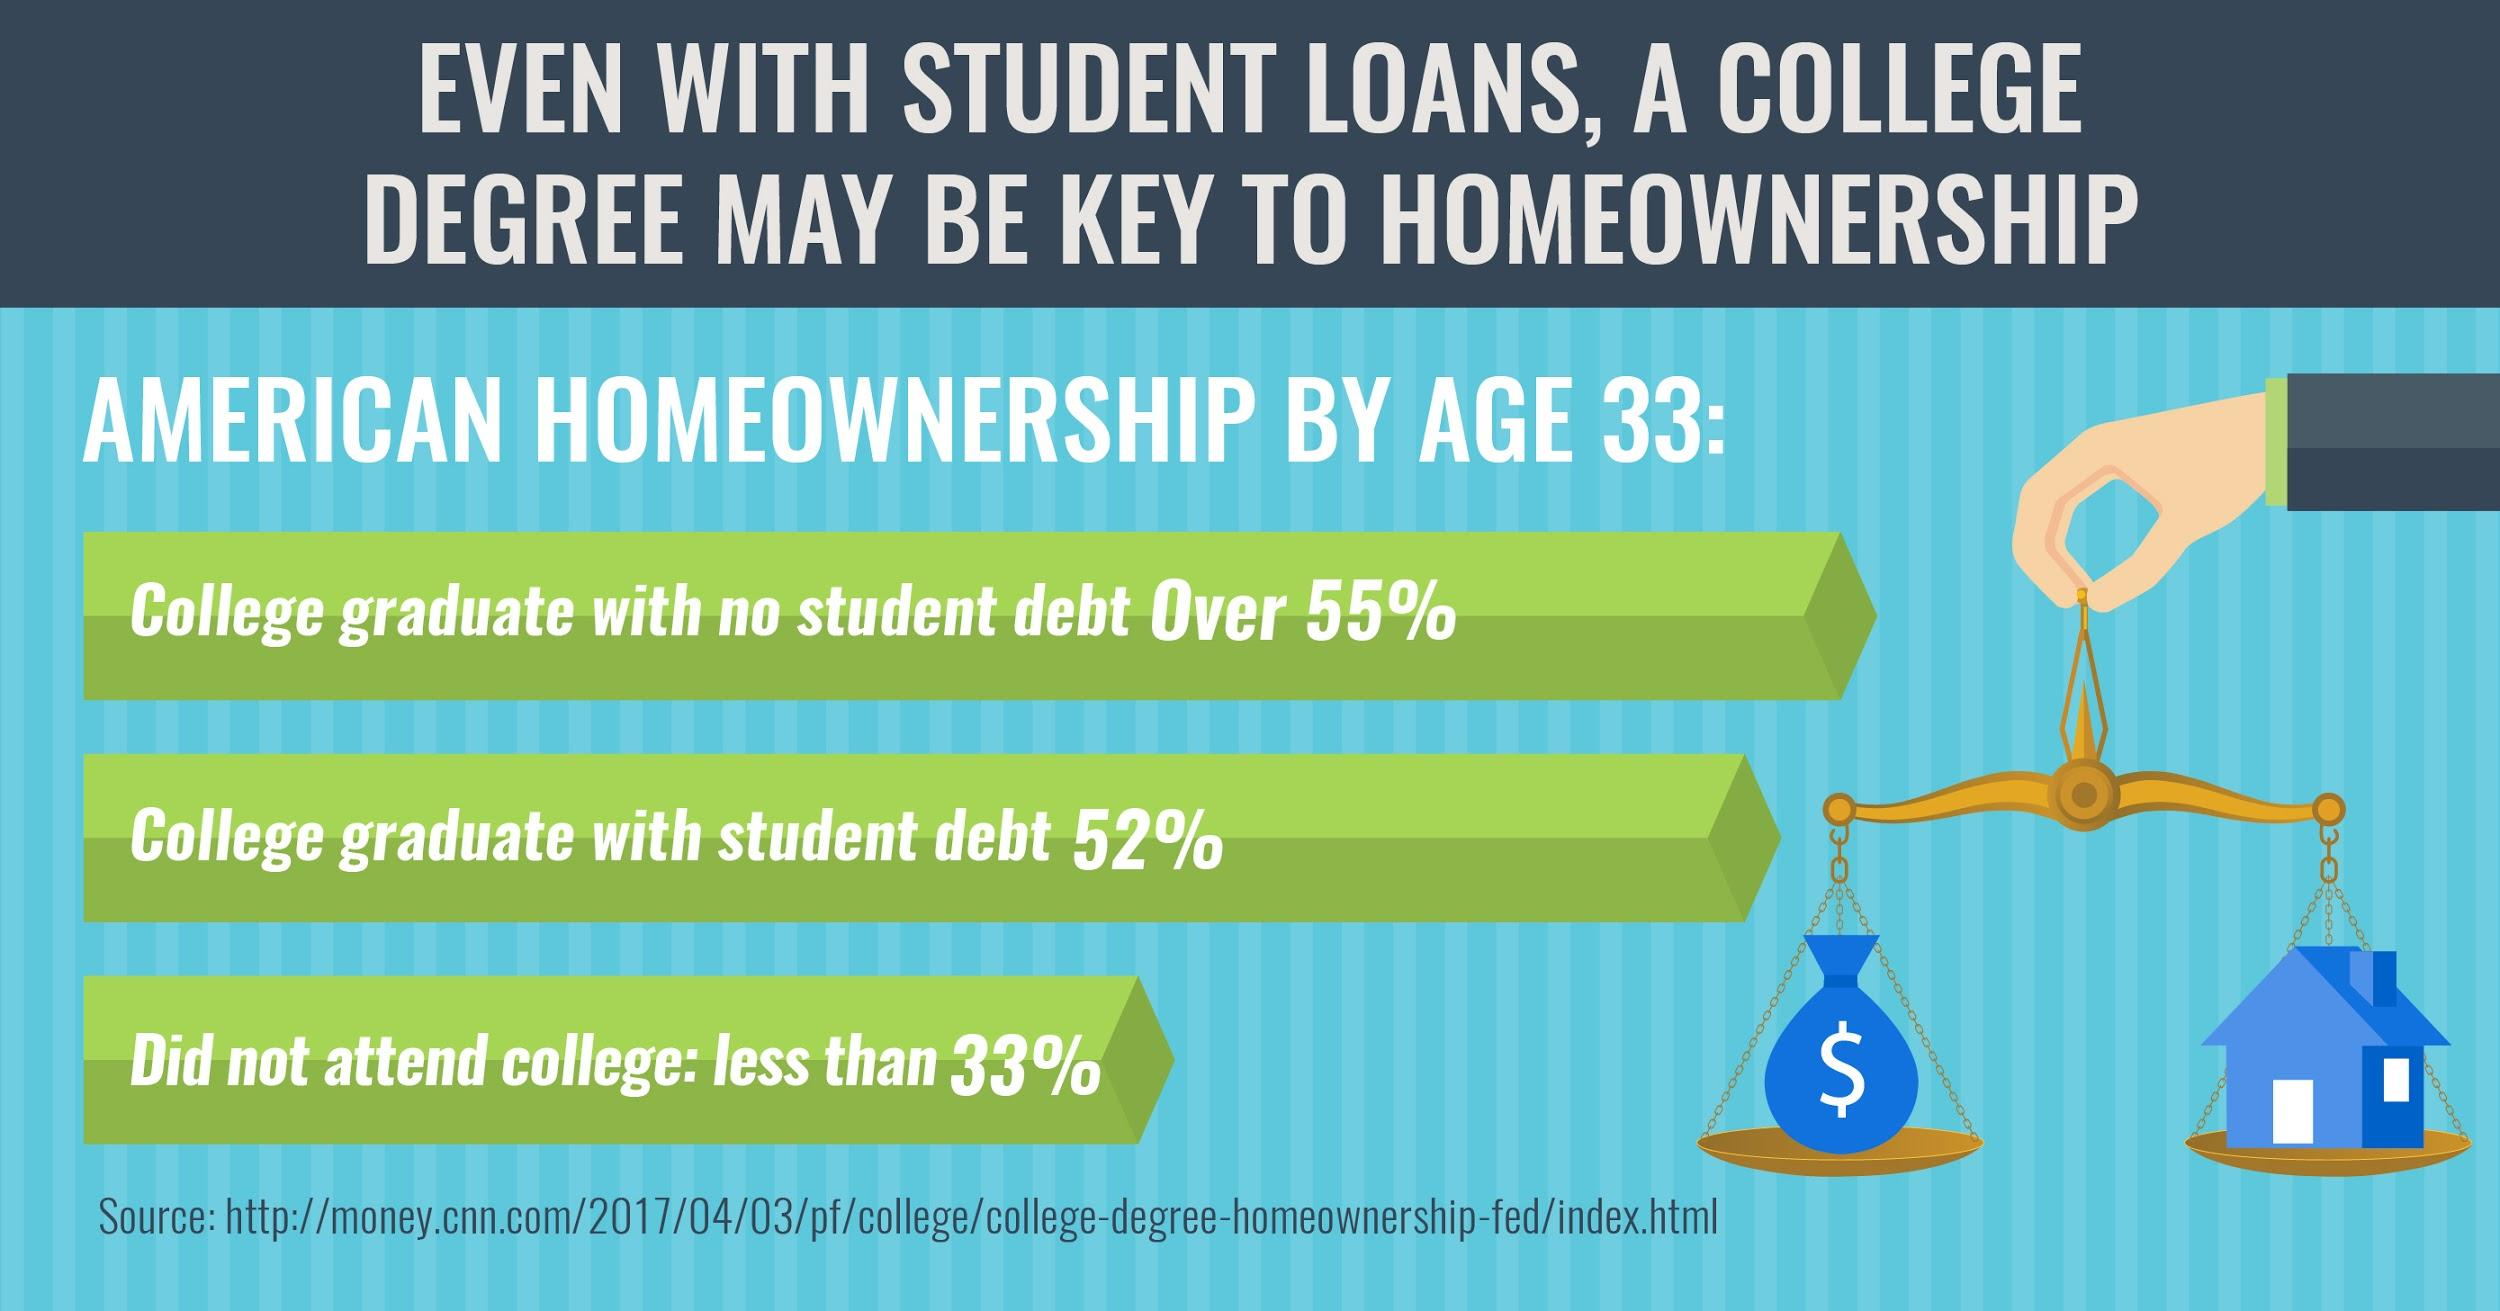 having a degree means more likely to own a home